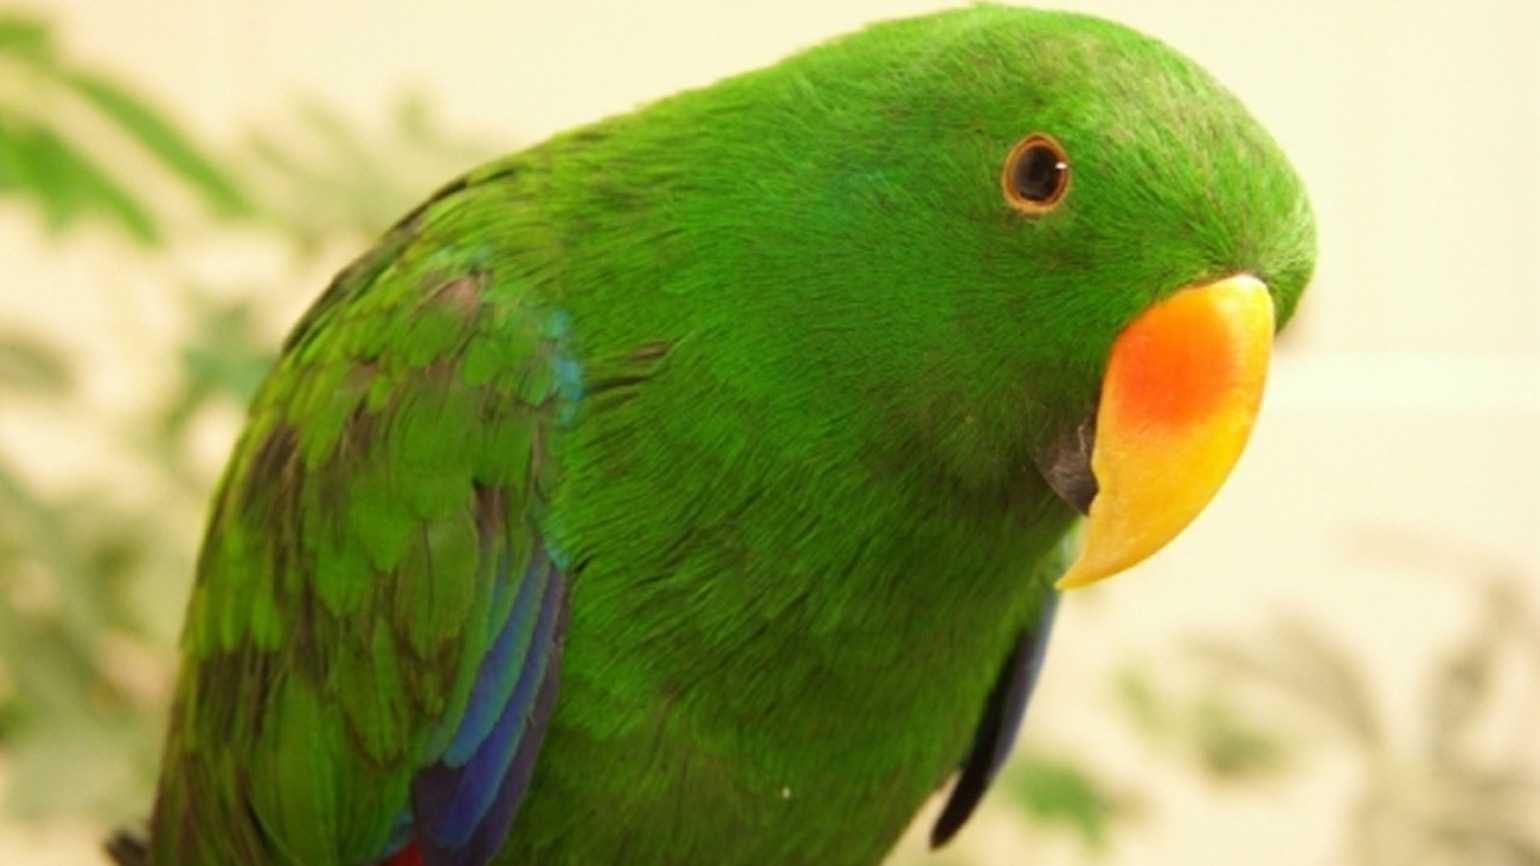 close-up of a vibrant green parrot